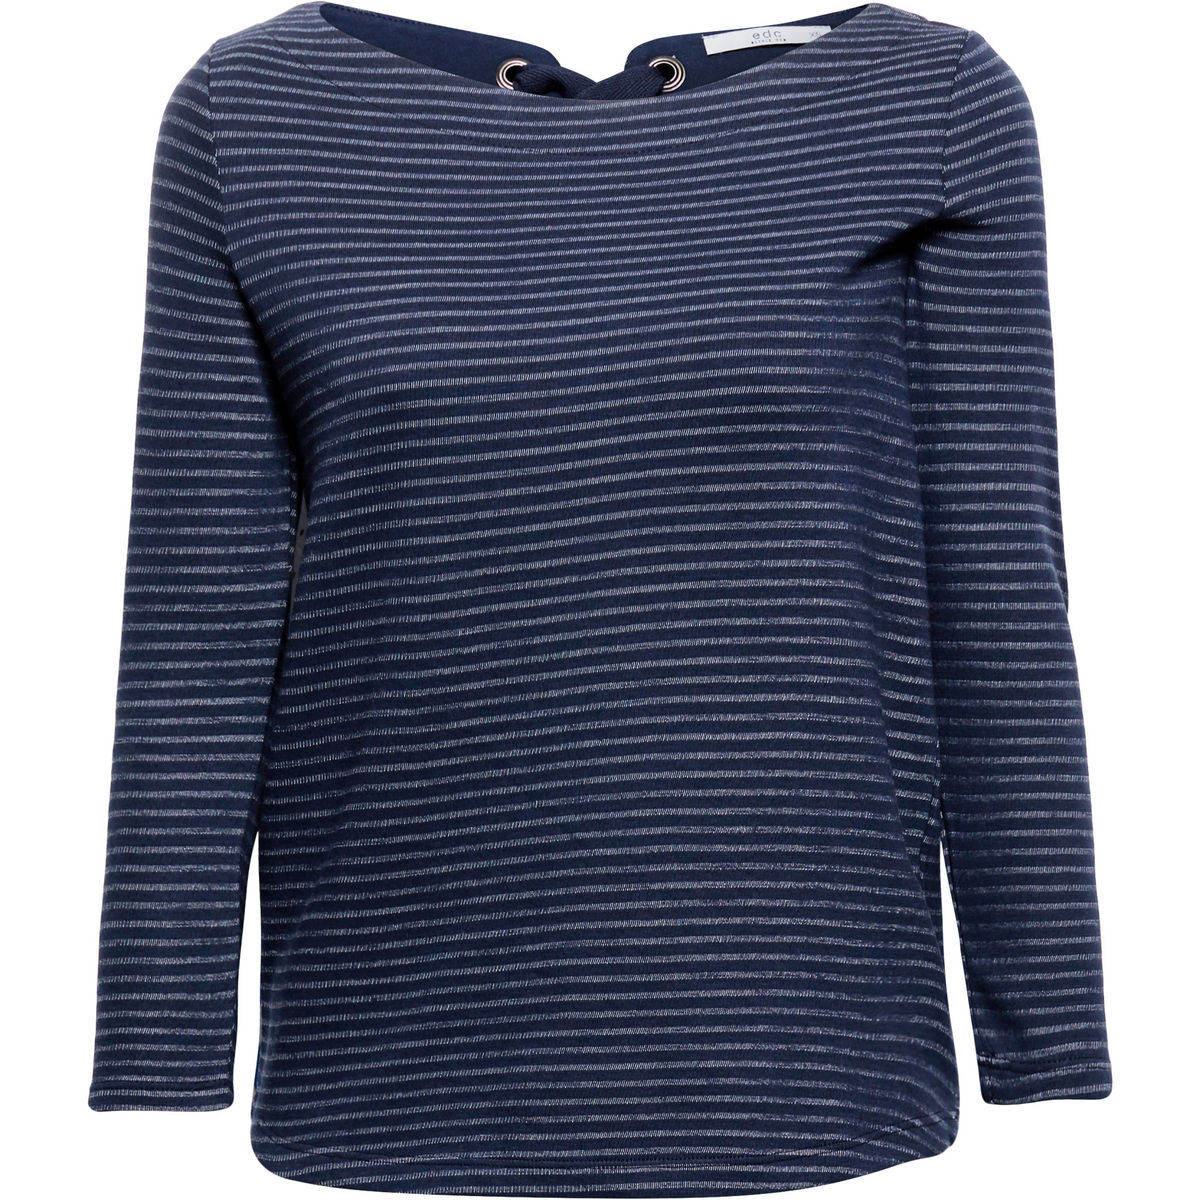 56b3927606cb0b edc by Esprit Damen Shirt mit 3/4 Arm, gestreift | Karstadt Online-Shop